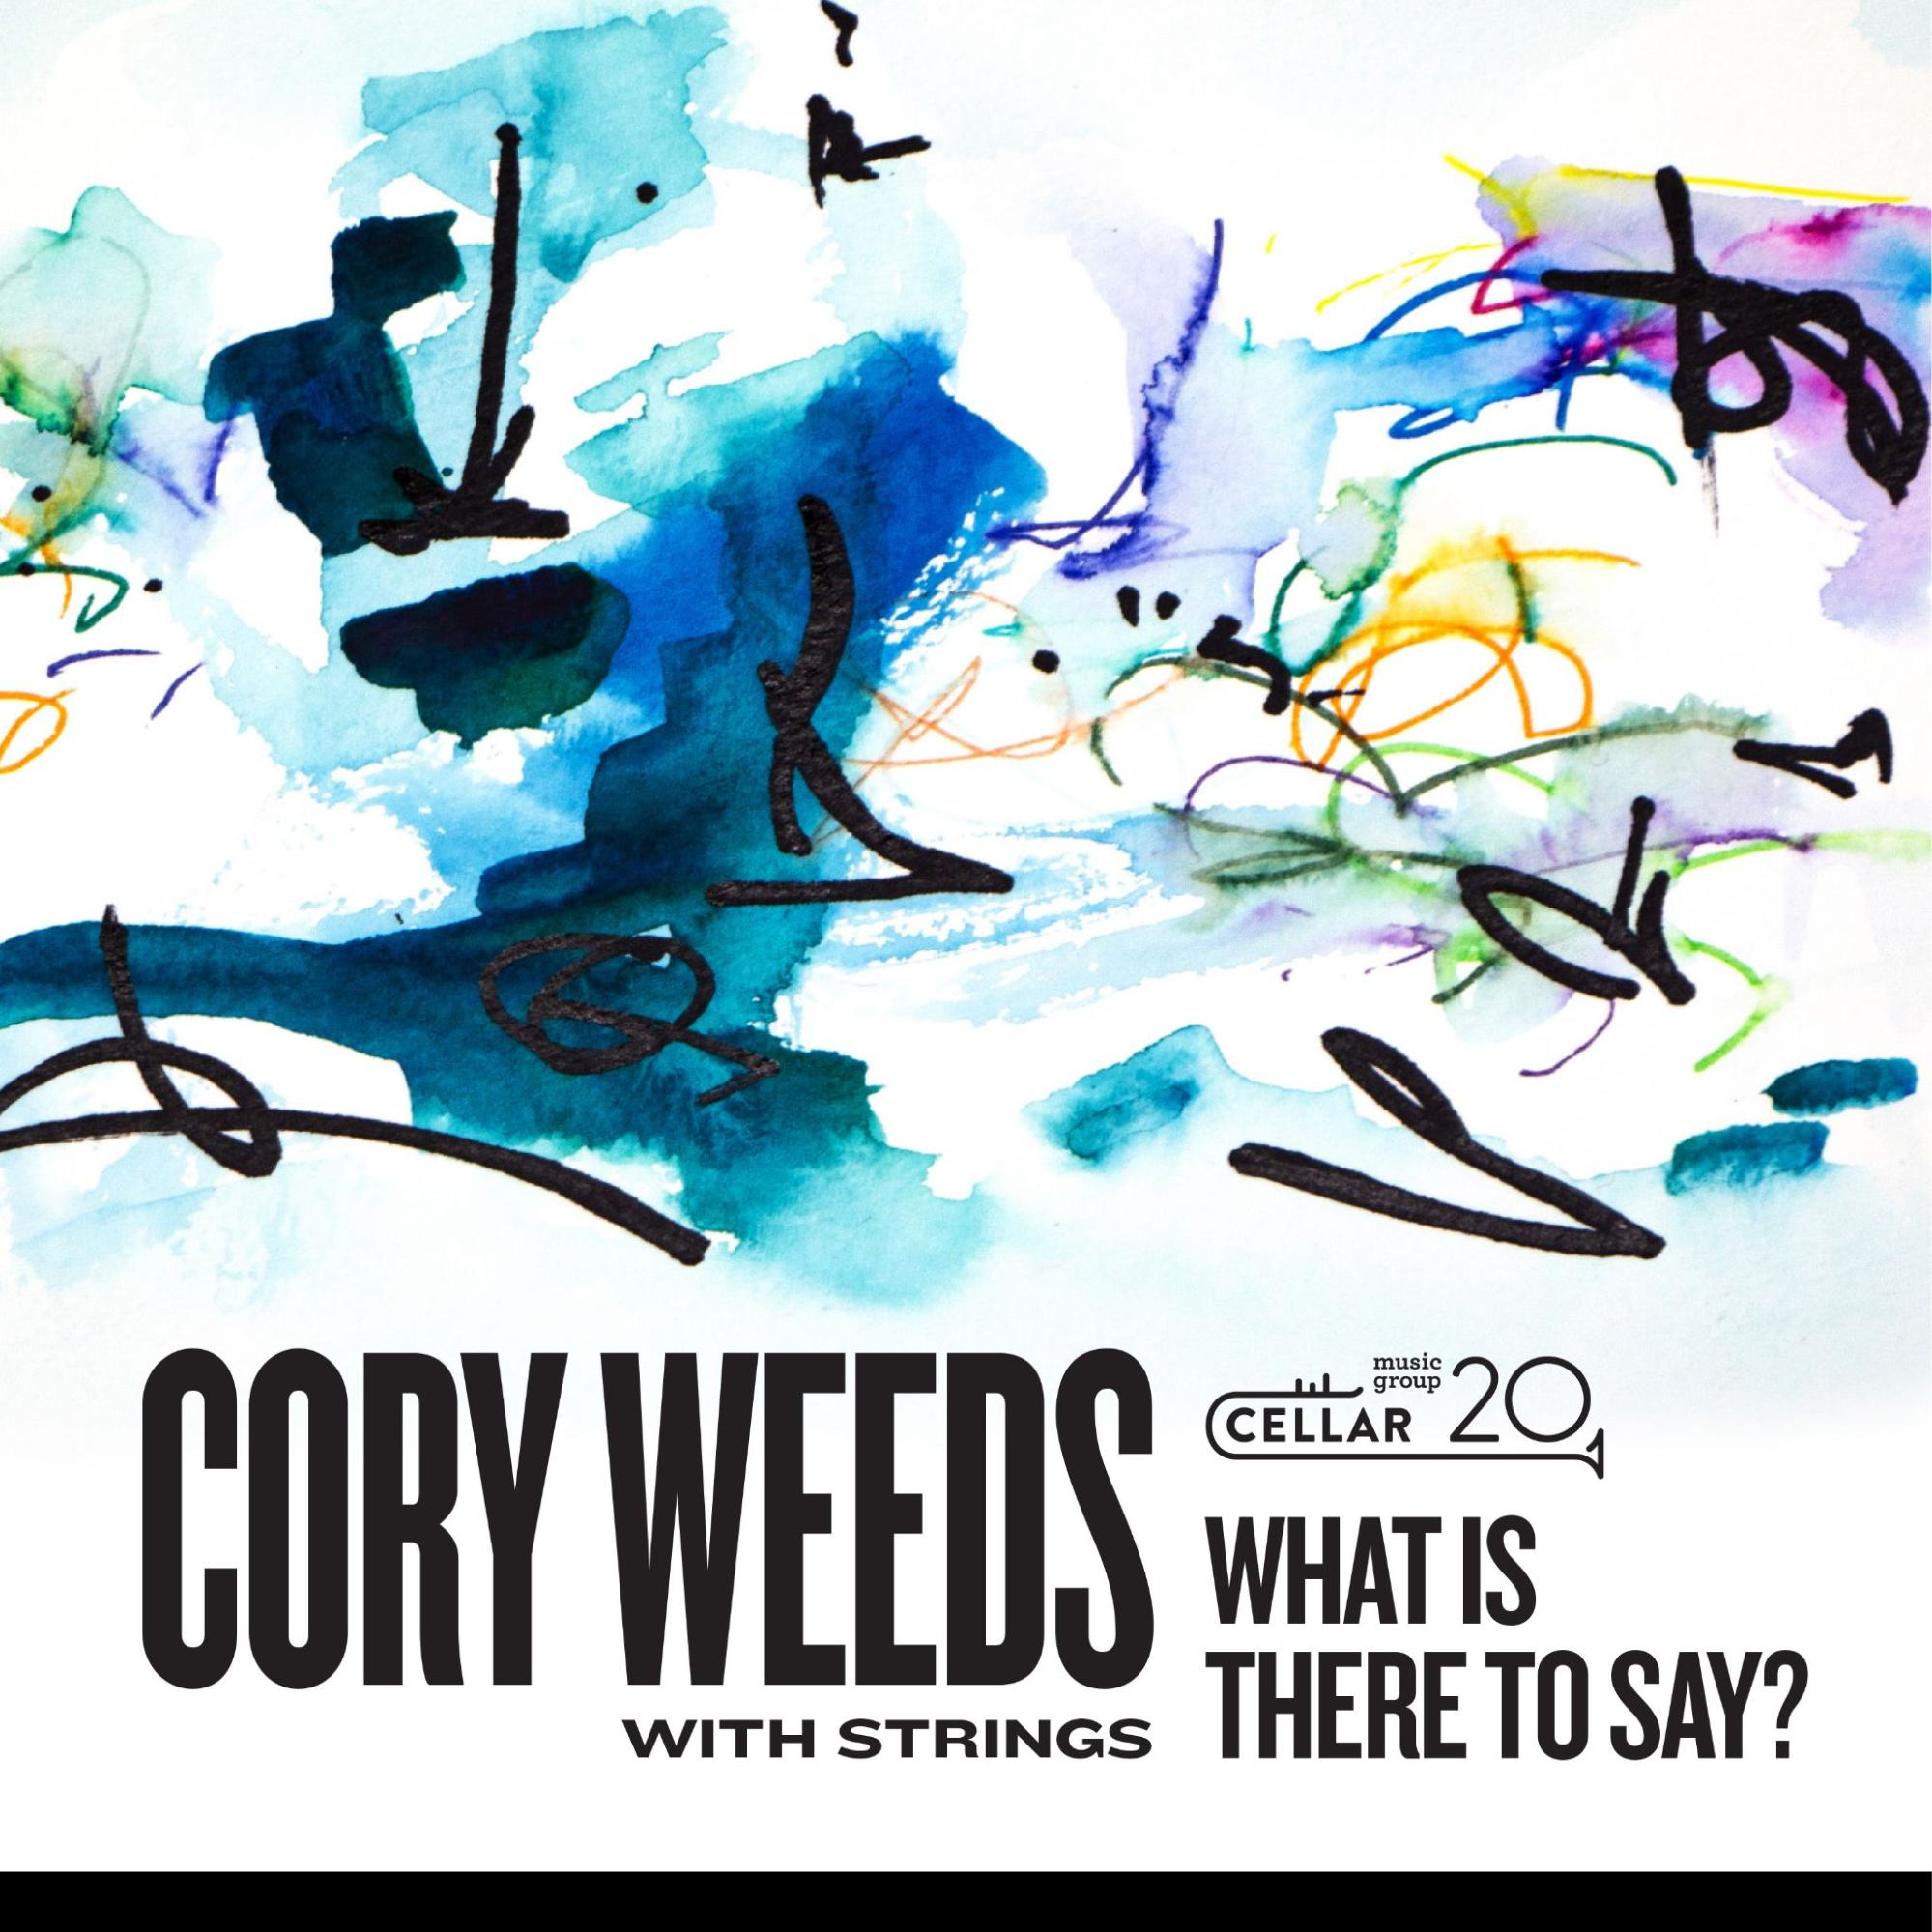 NEW RELEASE: Cory Weeds Teams with Phil Dwyer and Strings on WHAT IS THERE TO SAY? Due out November 19, 2021 via Cellar Music